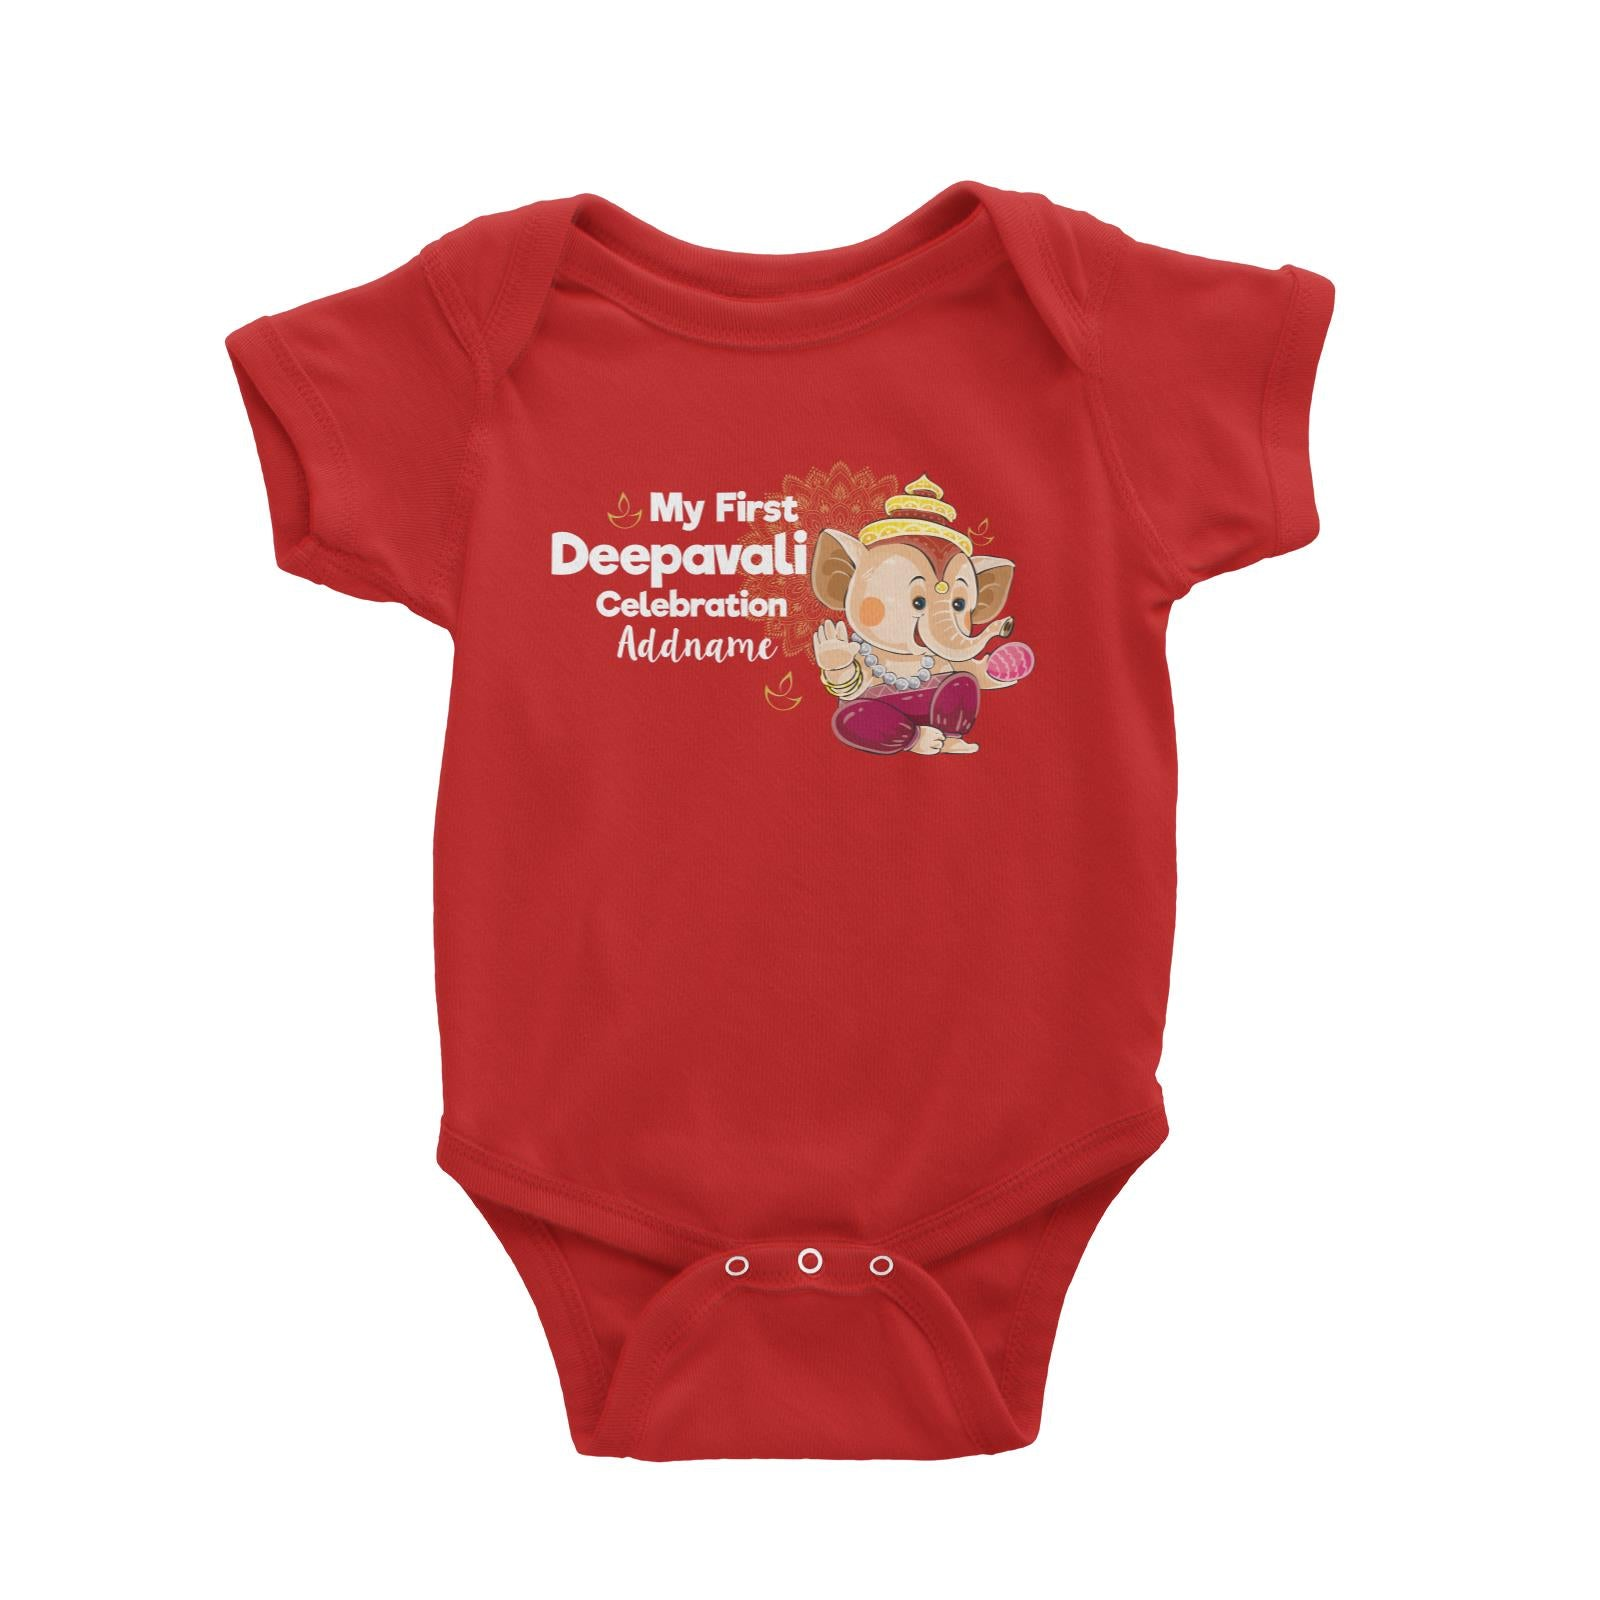 Cute Ganesha My First Deepavali Celebration Addname Baby Romper